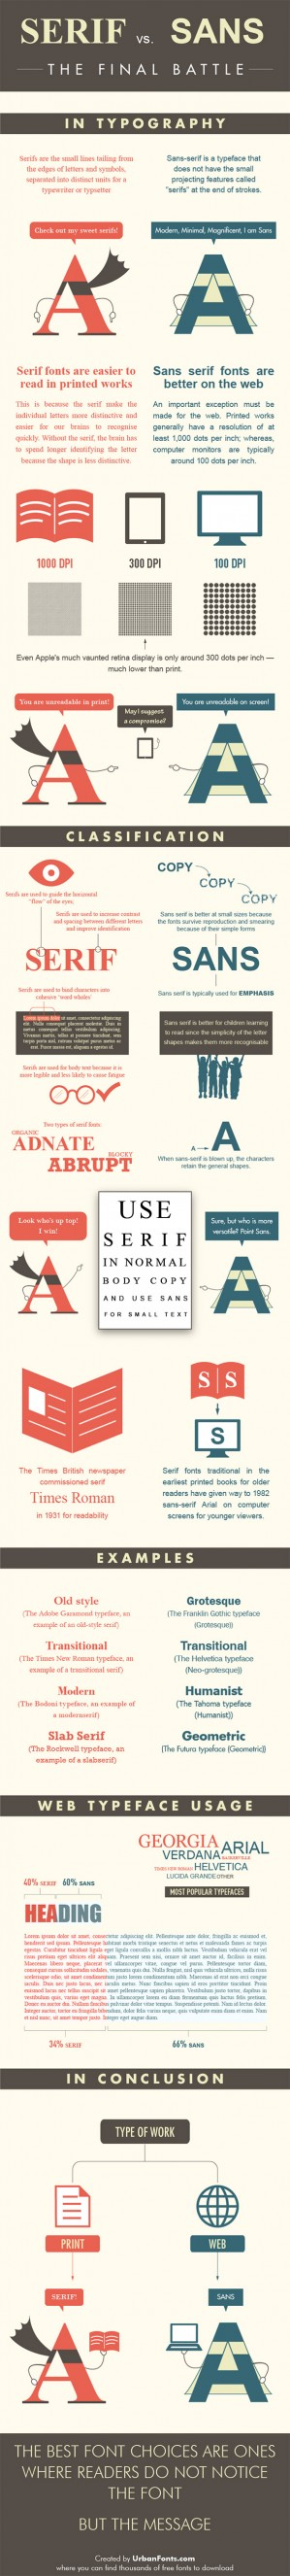 Serif Vs Sans Serif - The Final Battle Infographic